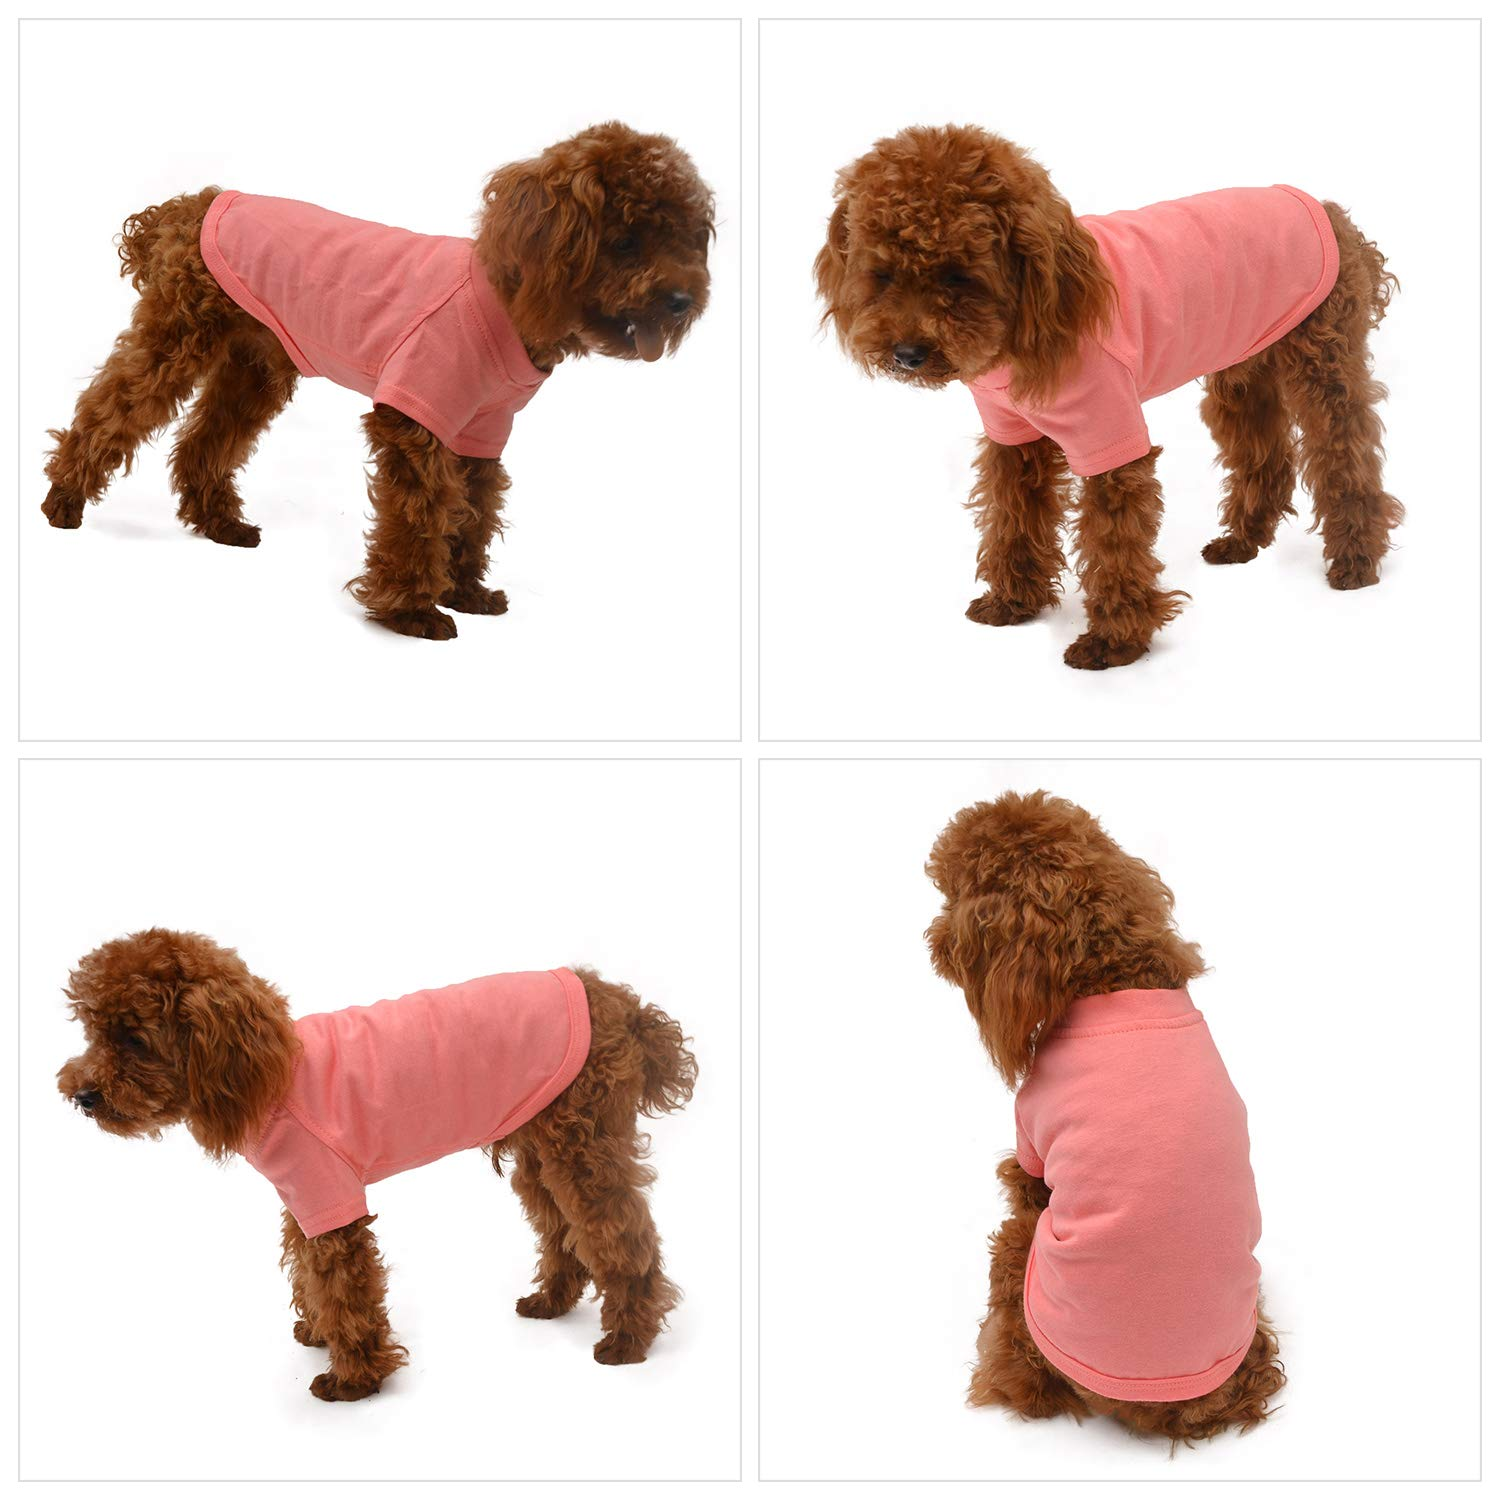 lovelonglong 2019 Pet Clothing Costumes Puppy Dog Clothes Blank T-Shirt Tee Shirts for Large Medium Small Dogs 100/% Cotton Lotuspink S